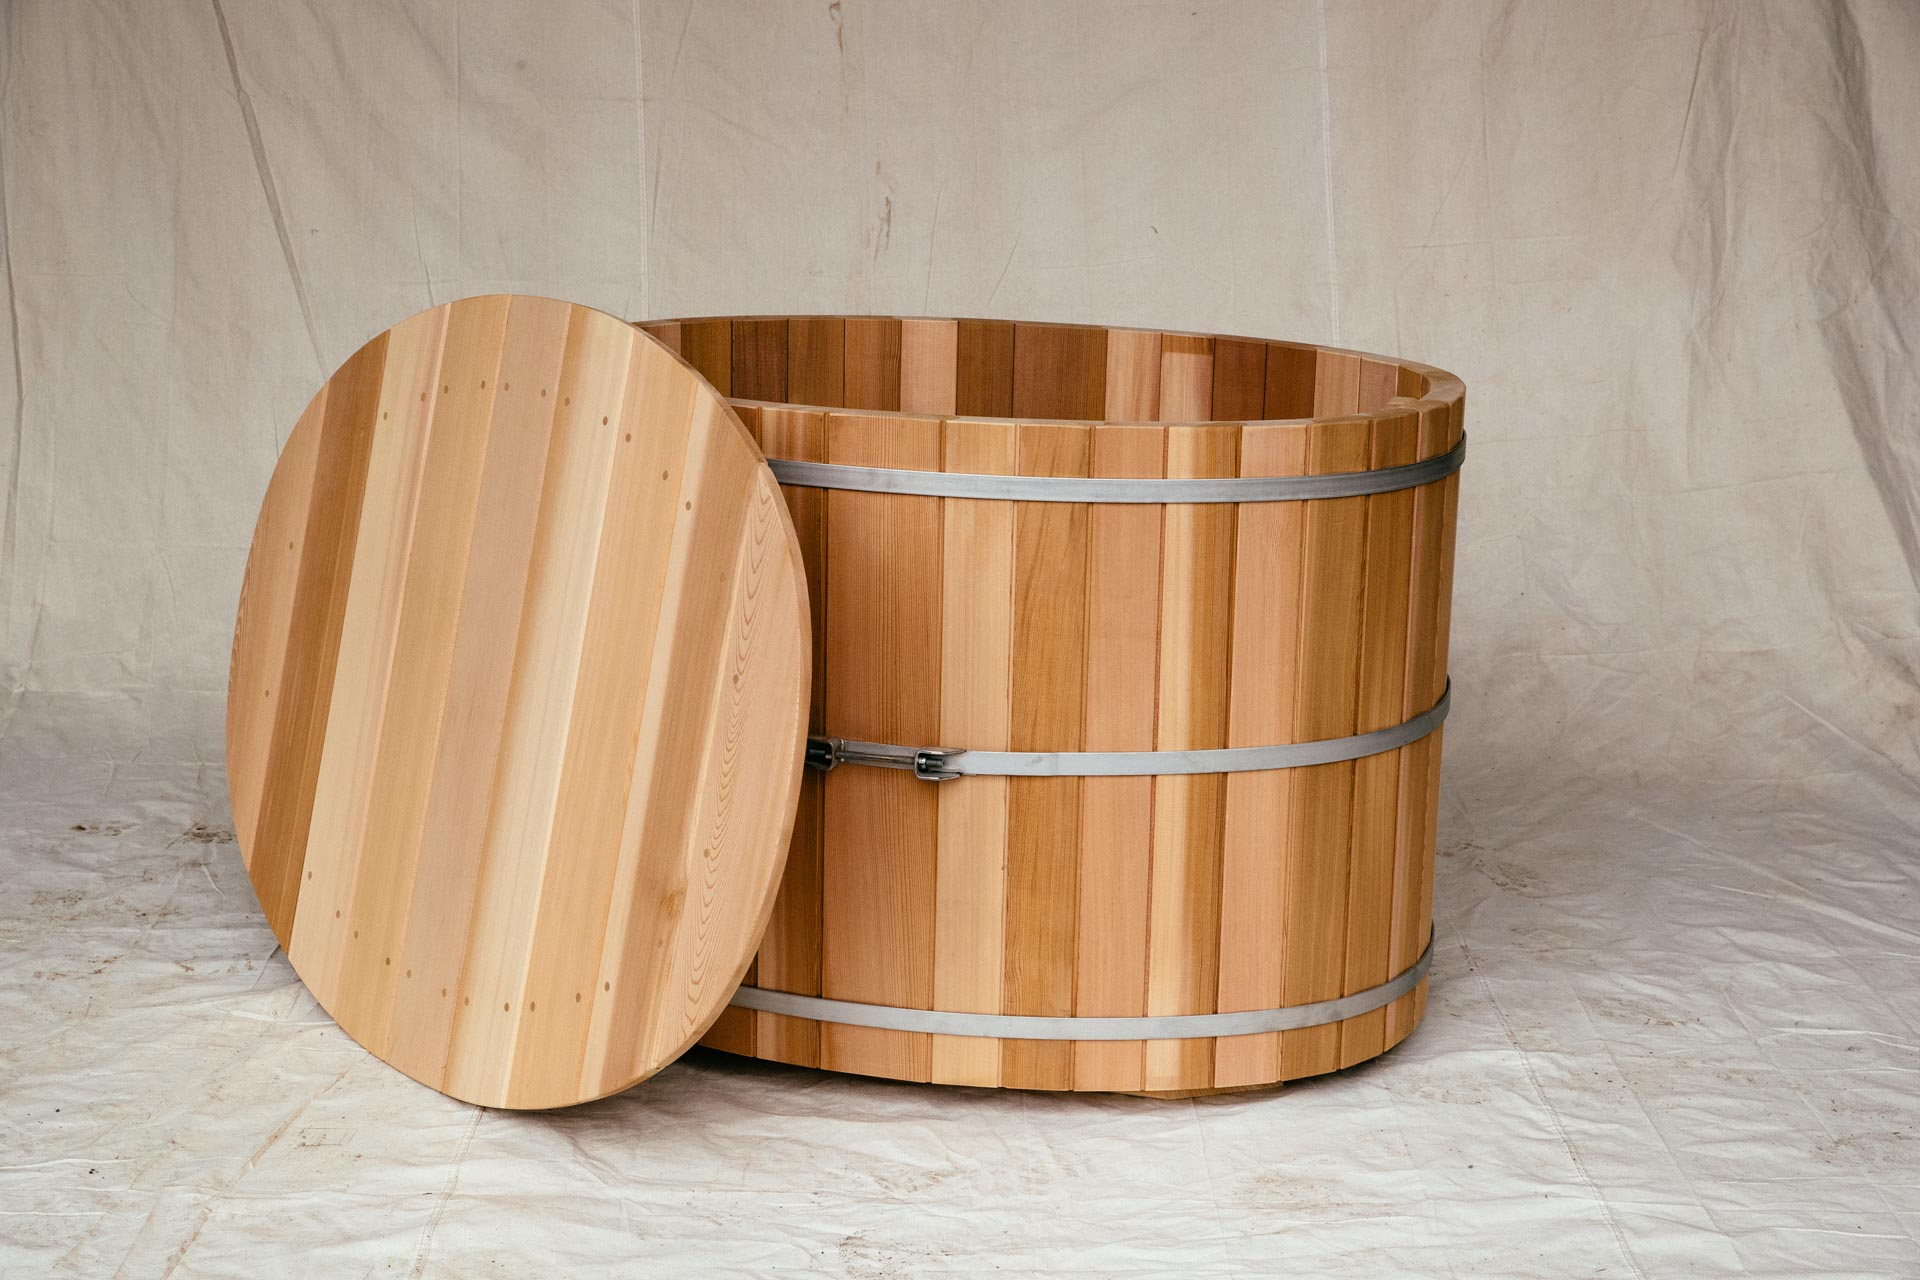 One Person Oval Cedar Soaking Tub with Lid